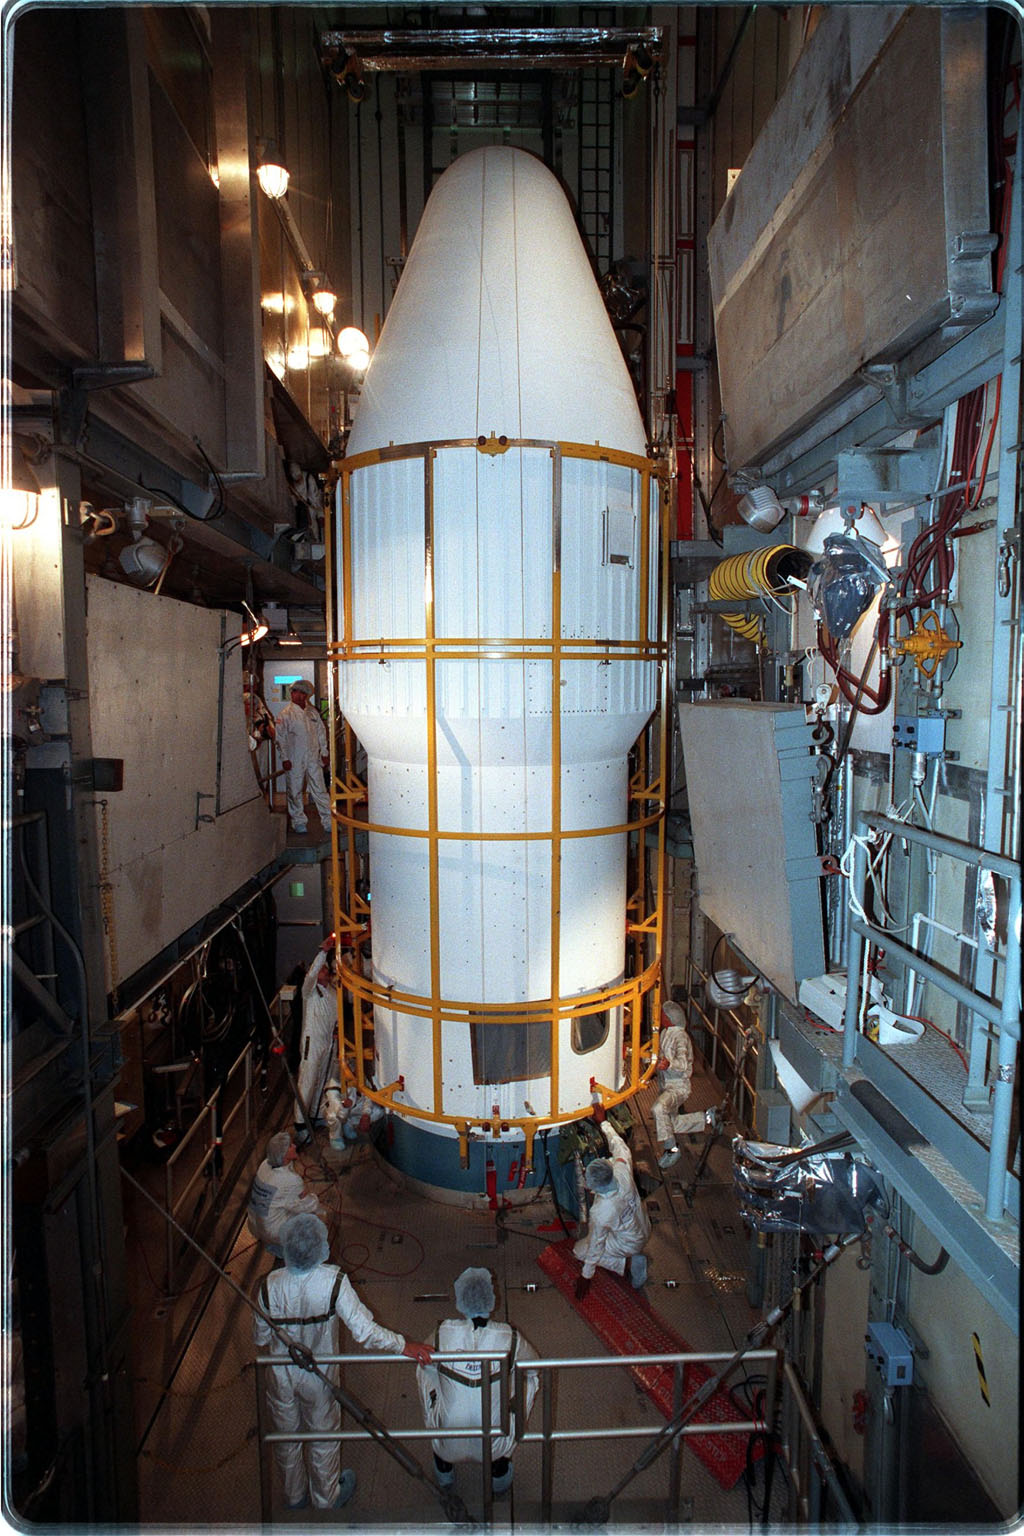 At Launch Pad 17-A, Cape Canaveral Air Station, workers check the lower fittings of the fairing installed around the Stardust spacecraft and upper stage of the Boeing Delta II rocket. Targeted for launch at 4:06:42 p.m. on Feb. 6, the spacecraft is destined for a close encounter with the comet Wild 2 in January 2004. Using a silicon-based substance called aerogel, Stardust will capture comet particles flying off the nucleus of the comet. The spacecraft also will bring back samples of interstellar dust. These materials consist of ancient pre-solar interstellar grains and other remnants left over from the formation of the solar system. Scientists expect their analysis to provide important insights into the evolution of the sun and planets and possibly into the origin of life itself. The collected samples will return to Earth in a sample return capsule to be jettisoned as Stardust swings by Earth in January 2006